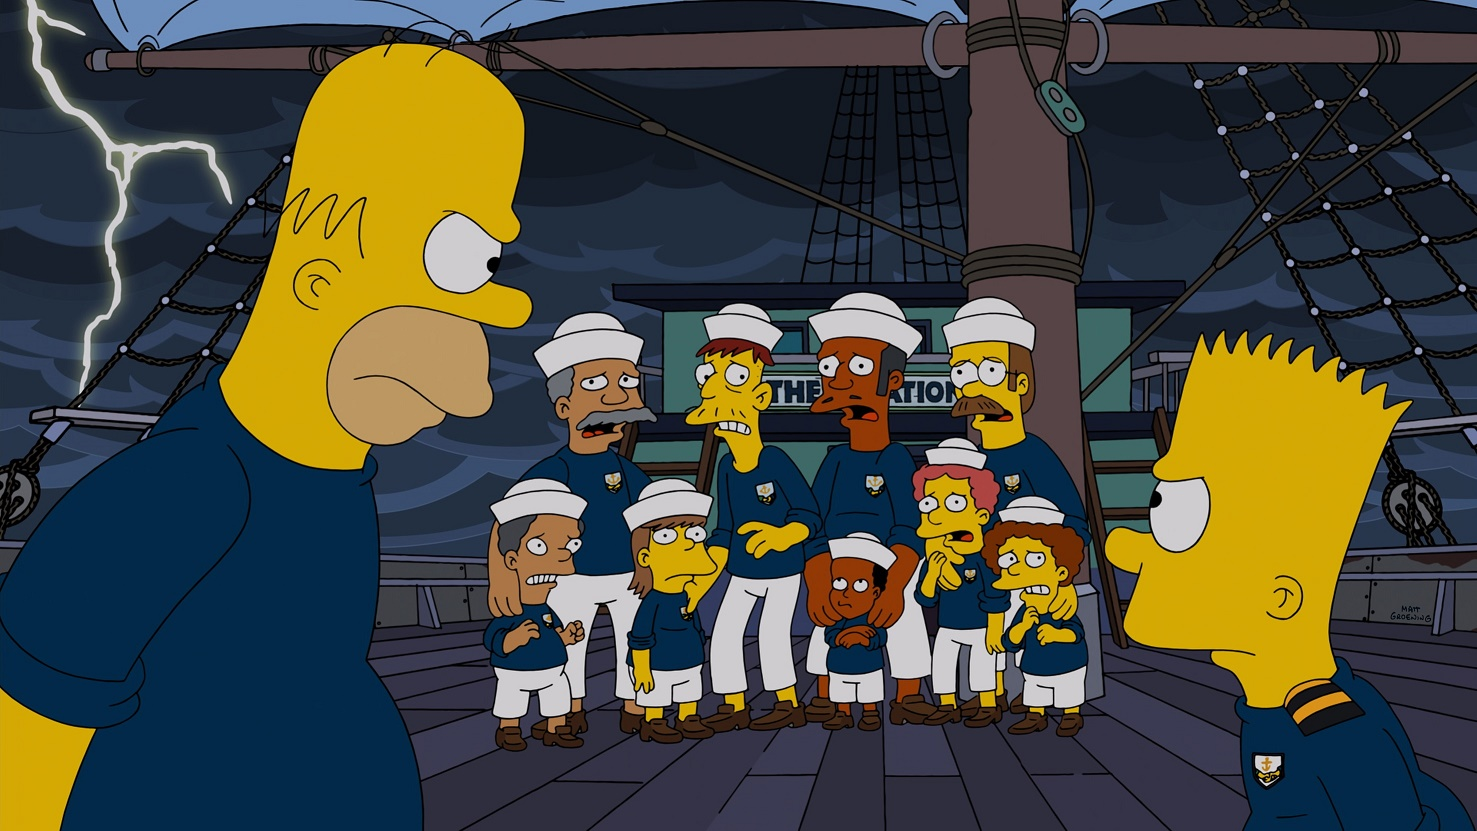 THE SIMPSONS: Bart disrespects HomerÕs authority in the ÒThe Wreck of the RelationshipÓ episode of THE SIMPSONS airing Sunday, Oct. 5 (8:00-8:30 PM ET/PT) on FOX.  THE SIMPSONS ª and  © 2014 TCFFC ALL RIGHTS RESERVED.